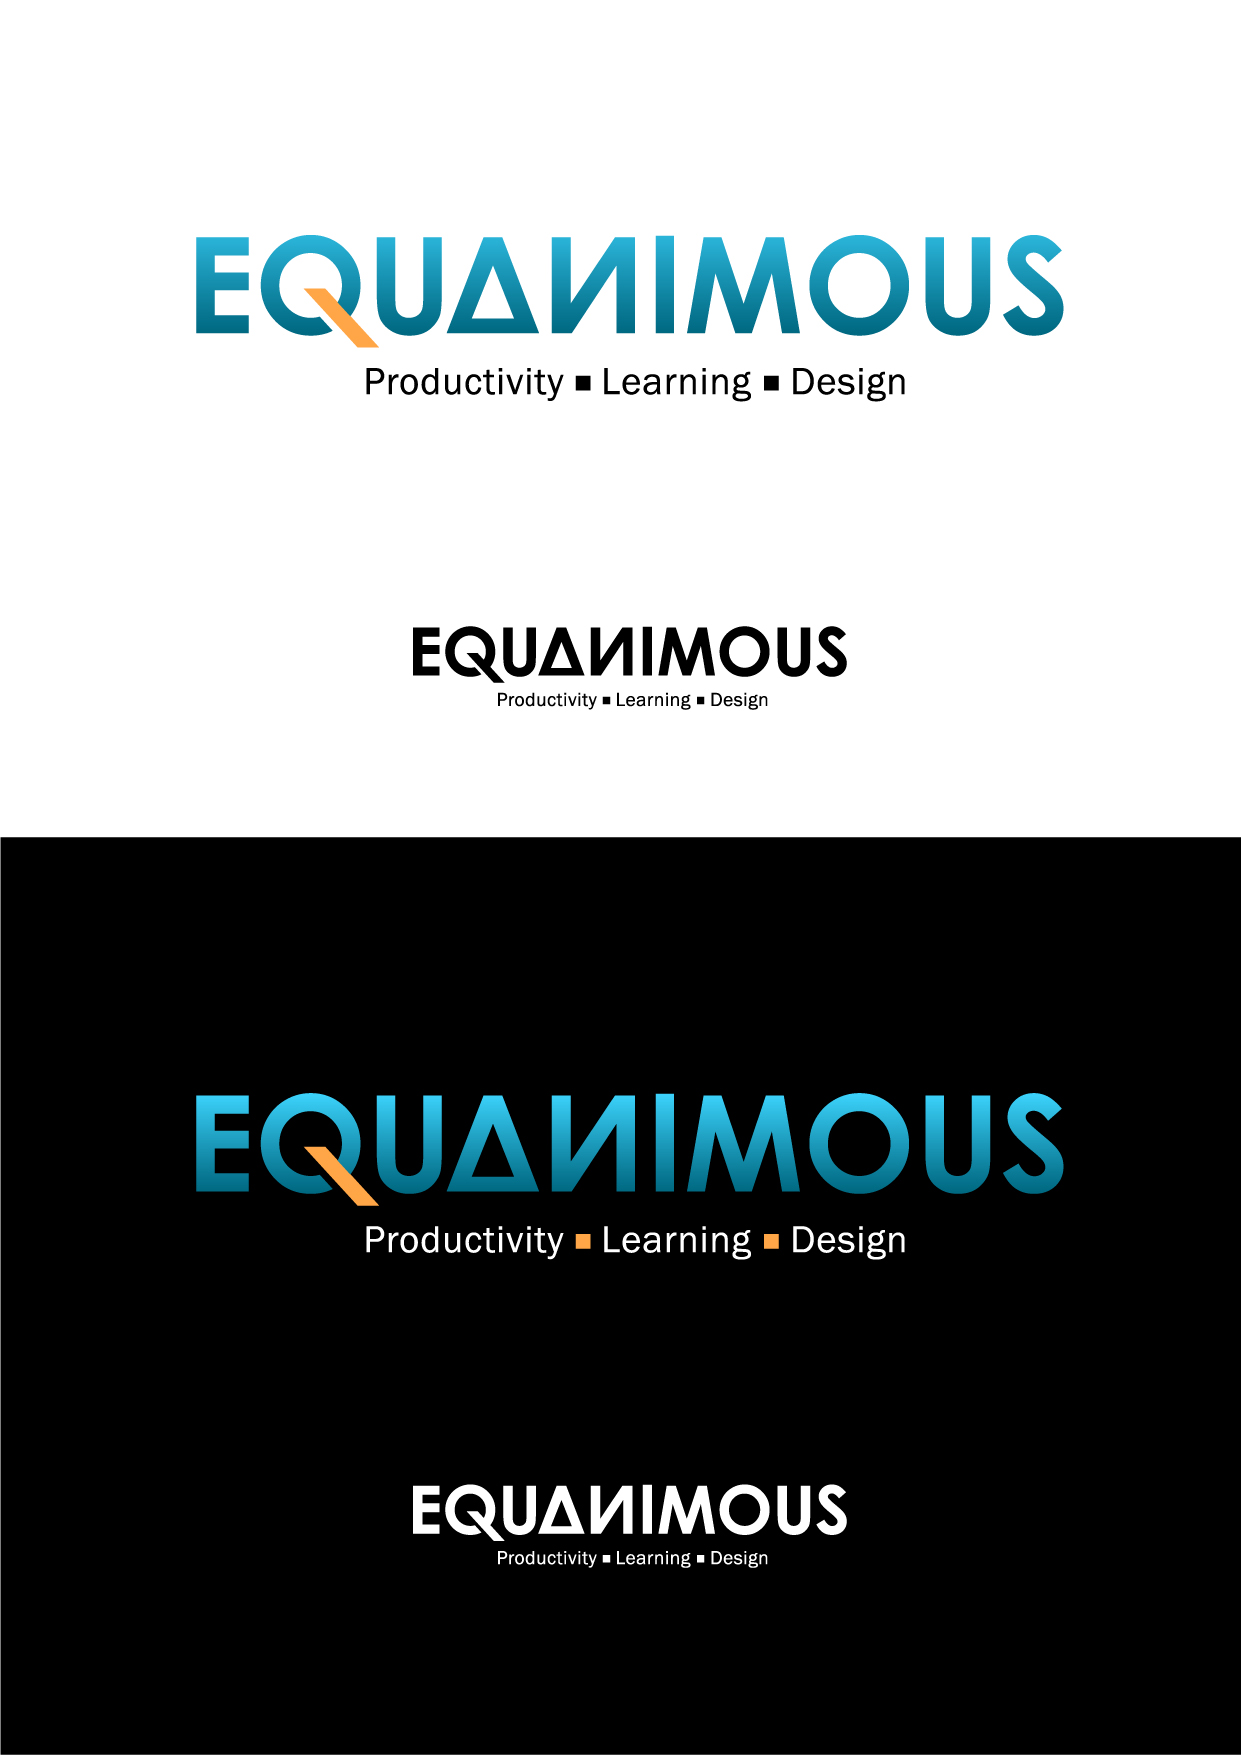 Logo Design by Wilfredo Mendoza - Entry No. 376 in the Logo Design Contest Logo Design : EQUANIMOUS : Productivity | Learning | Design.